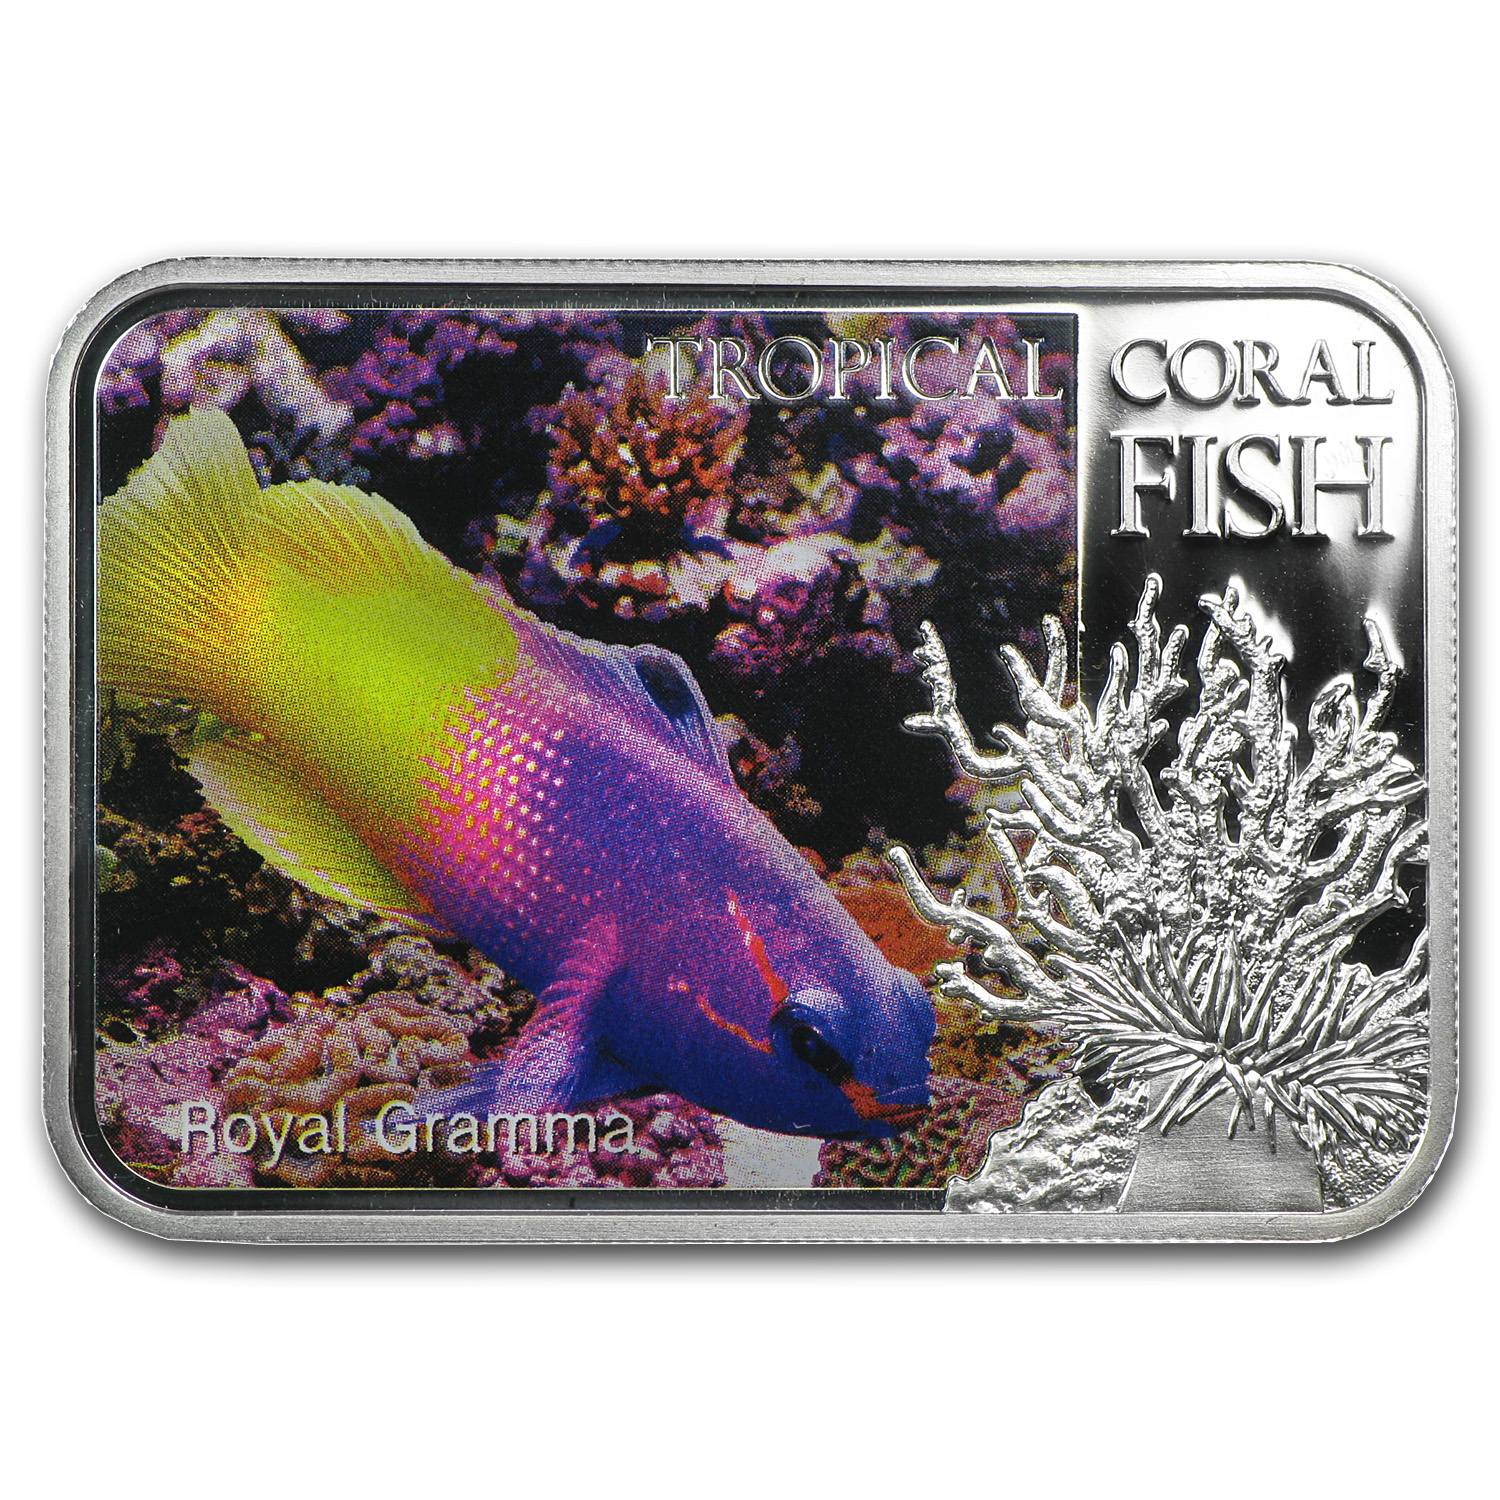 2013 1 oz Silver Niue Tropical Coral Fish - Royal Gramma